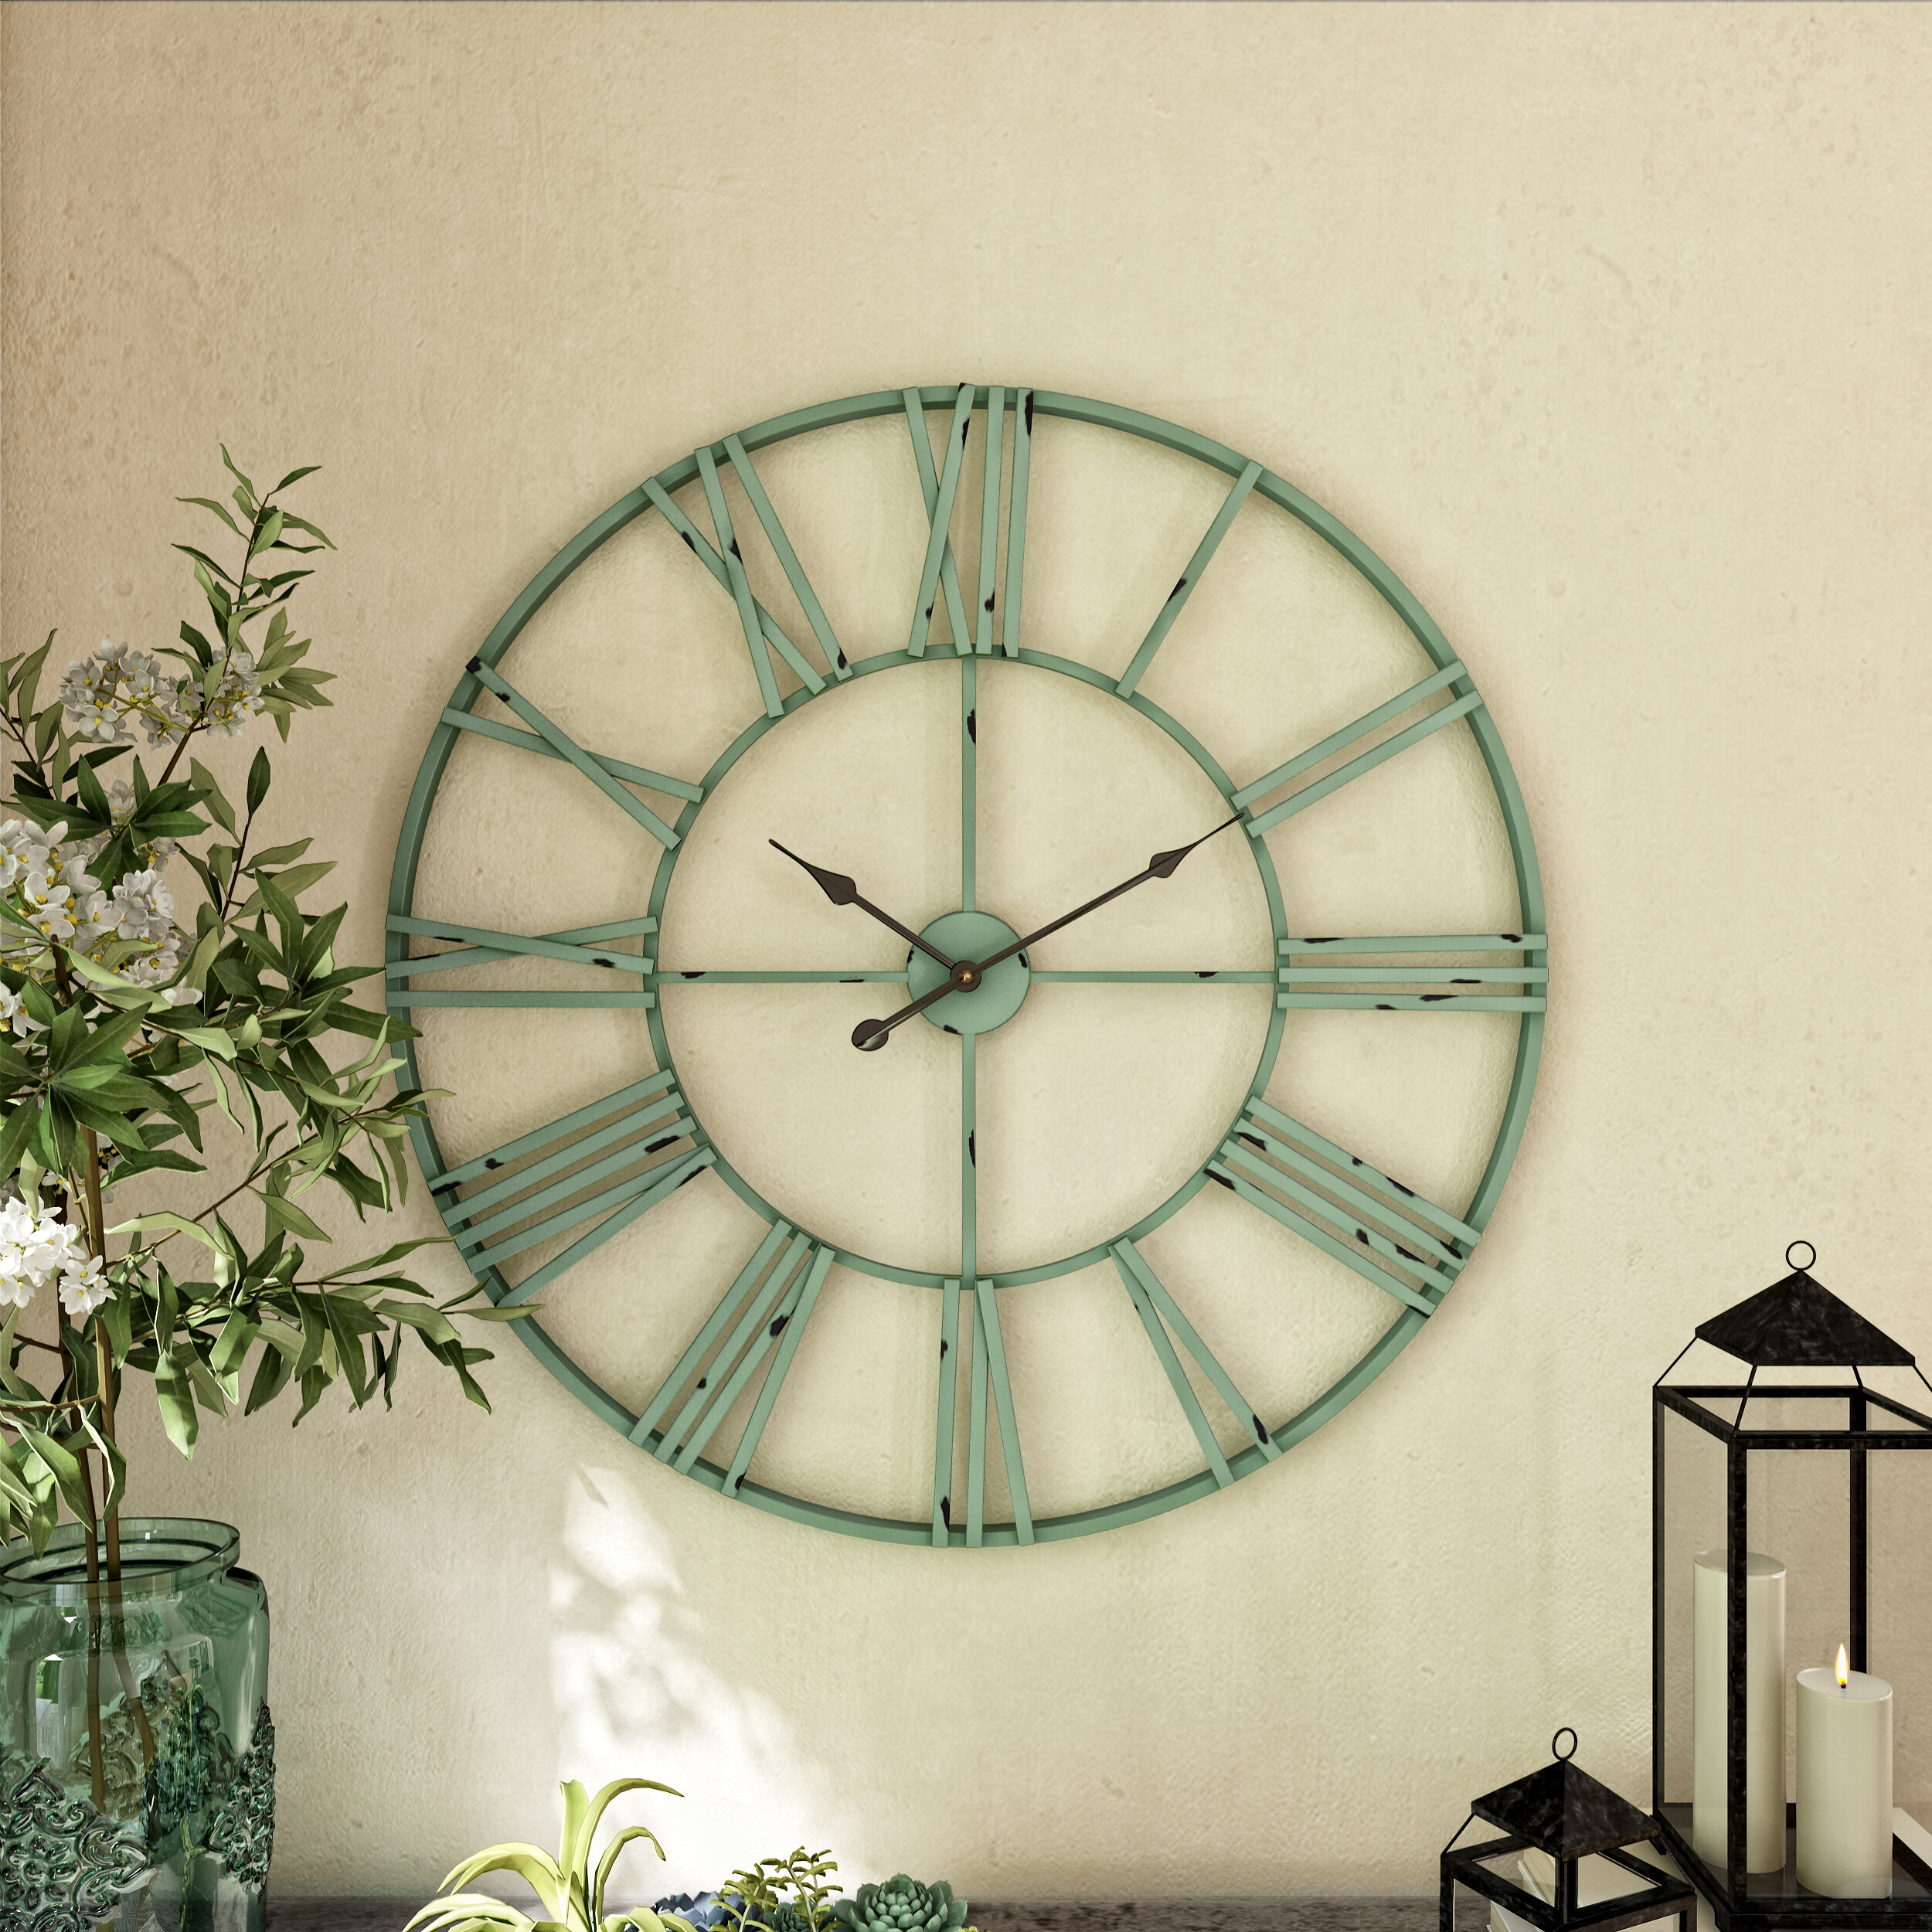 Blue Oversized Wall Clocks You Ll Love In 2021 Wayfair